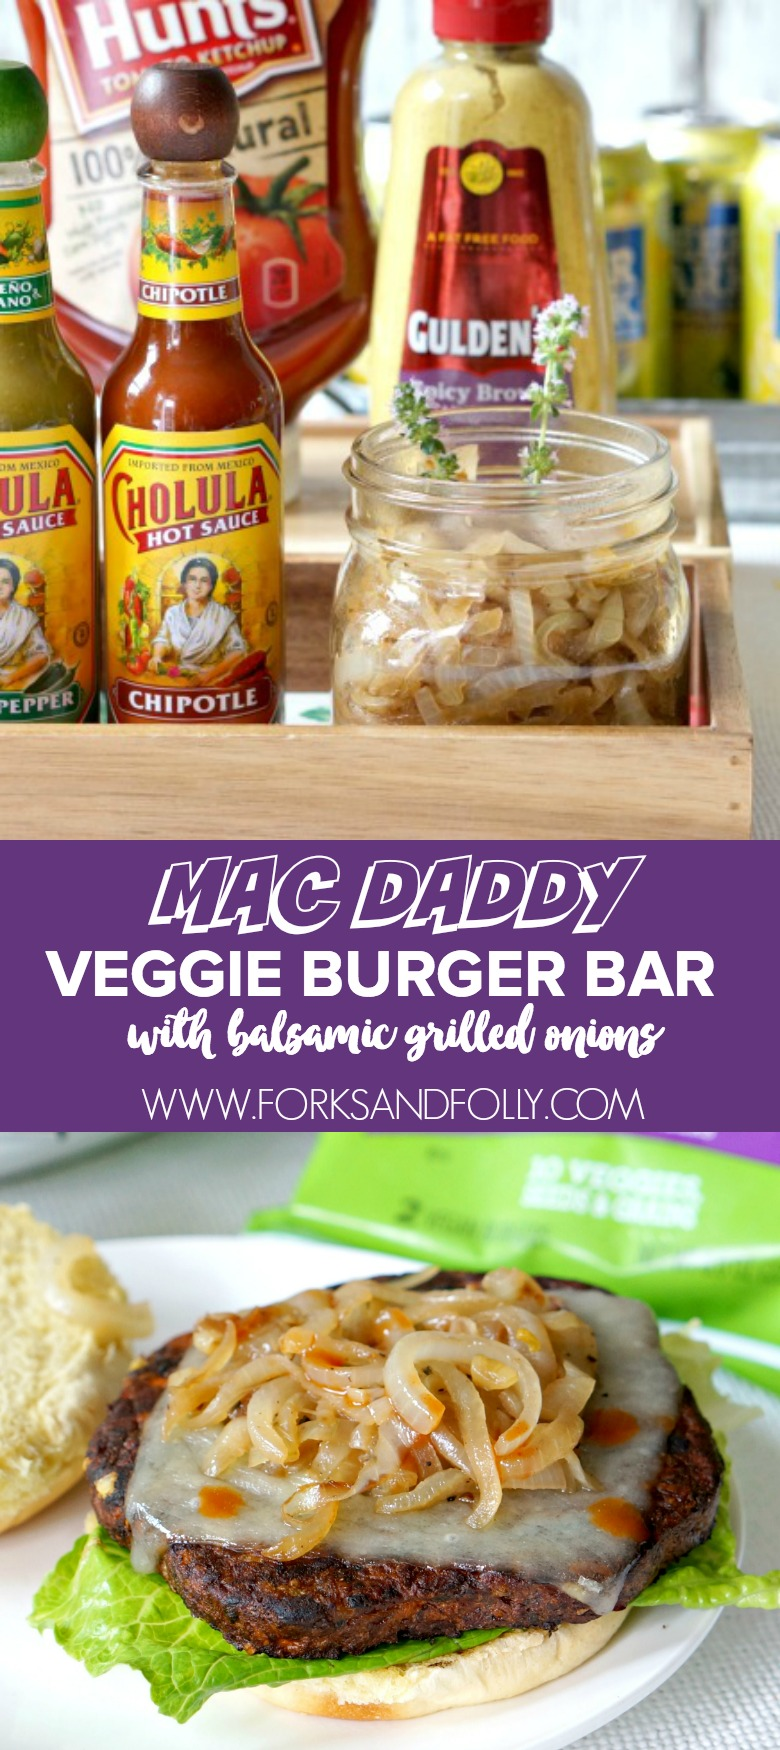 Our MacDaddy Veggie Burger Bar is the best way to entertain this summer season.  With easy condiments and our fab balsamic grilled onions, these veggie burgers will be the hit of the barbecue!